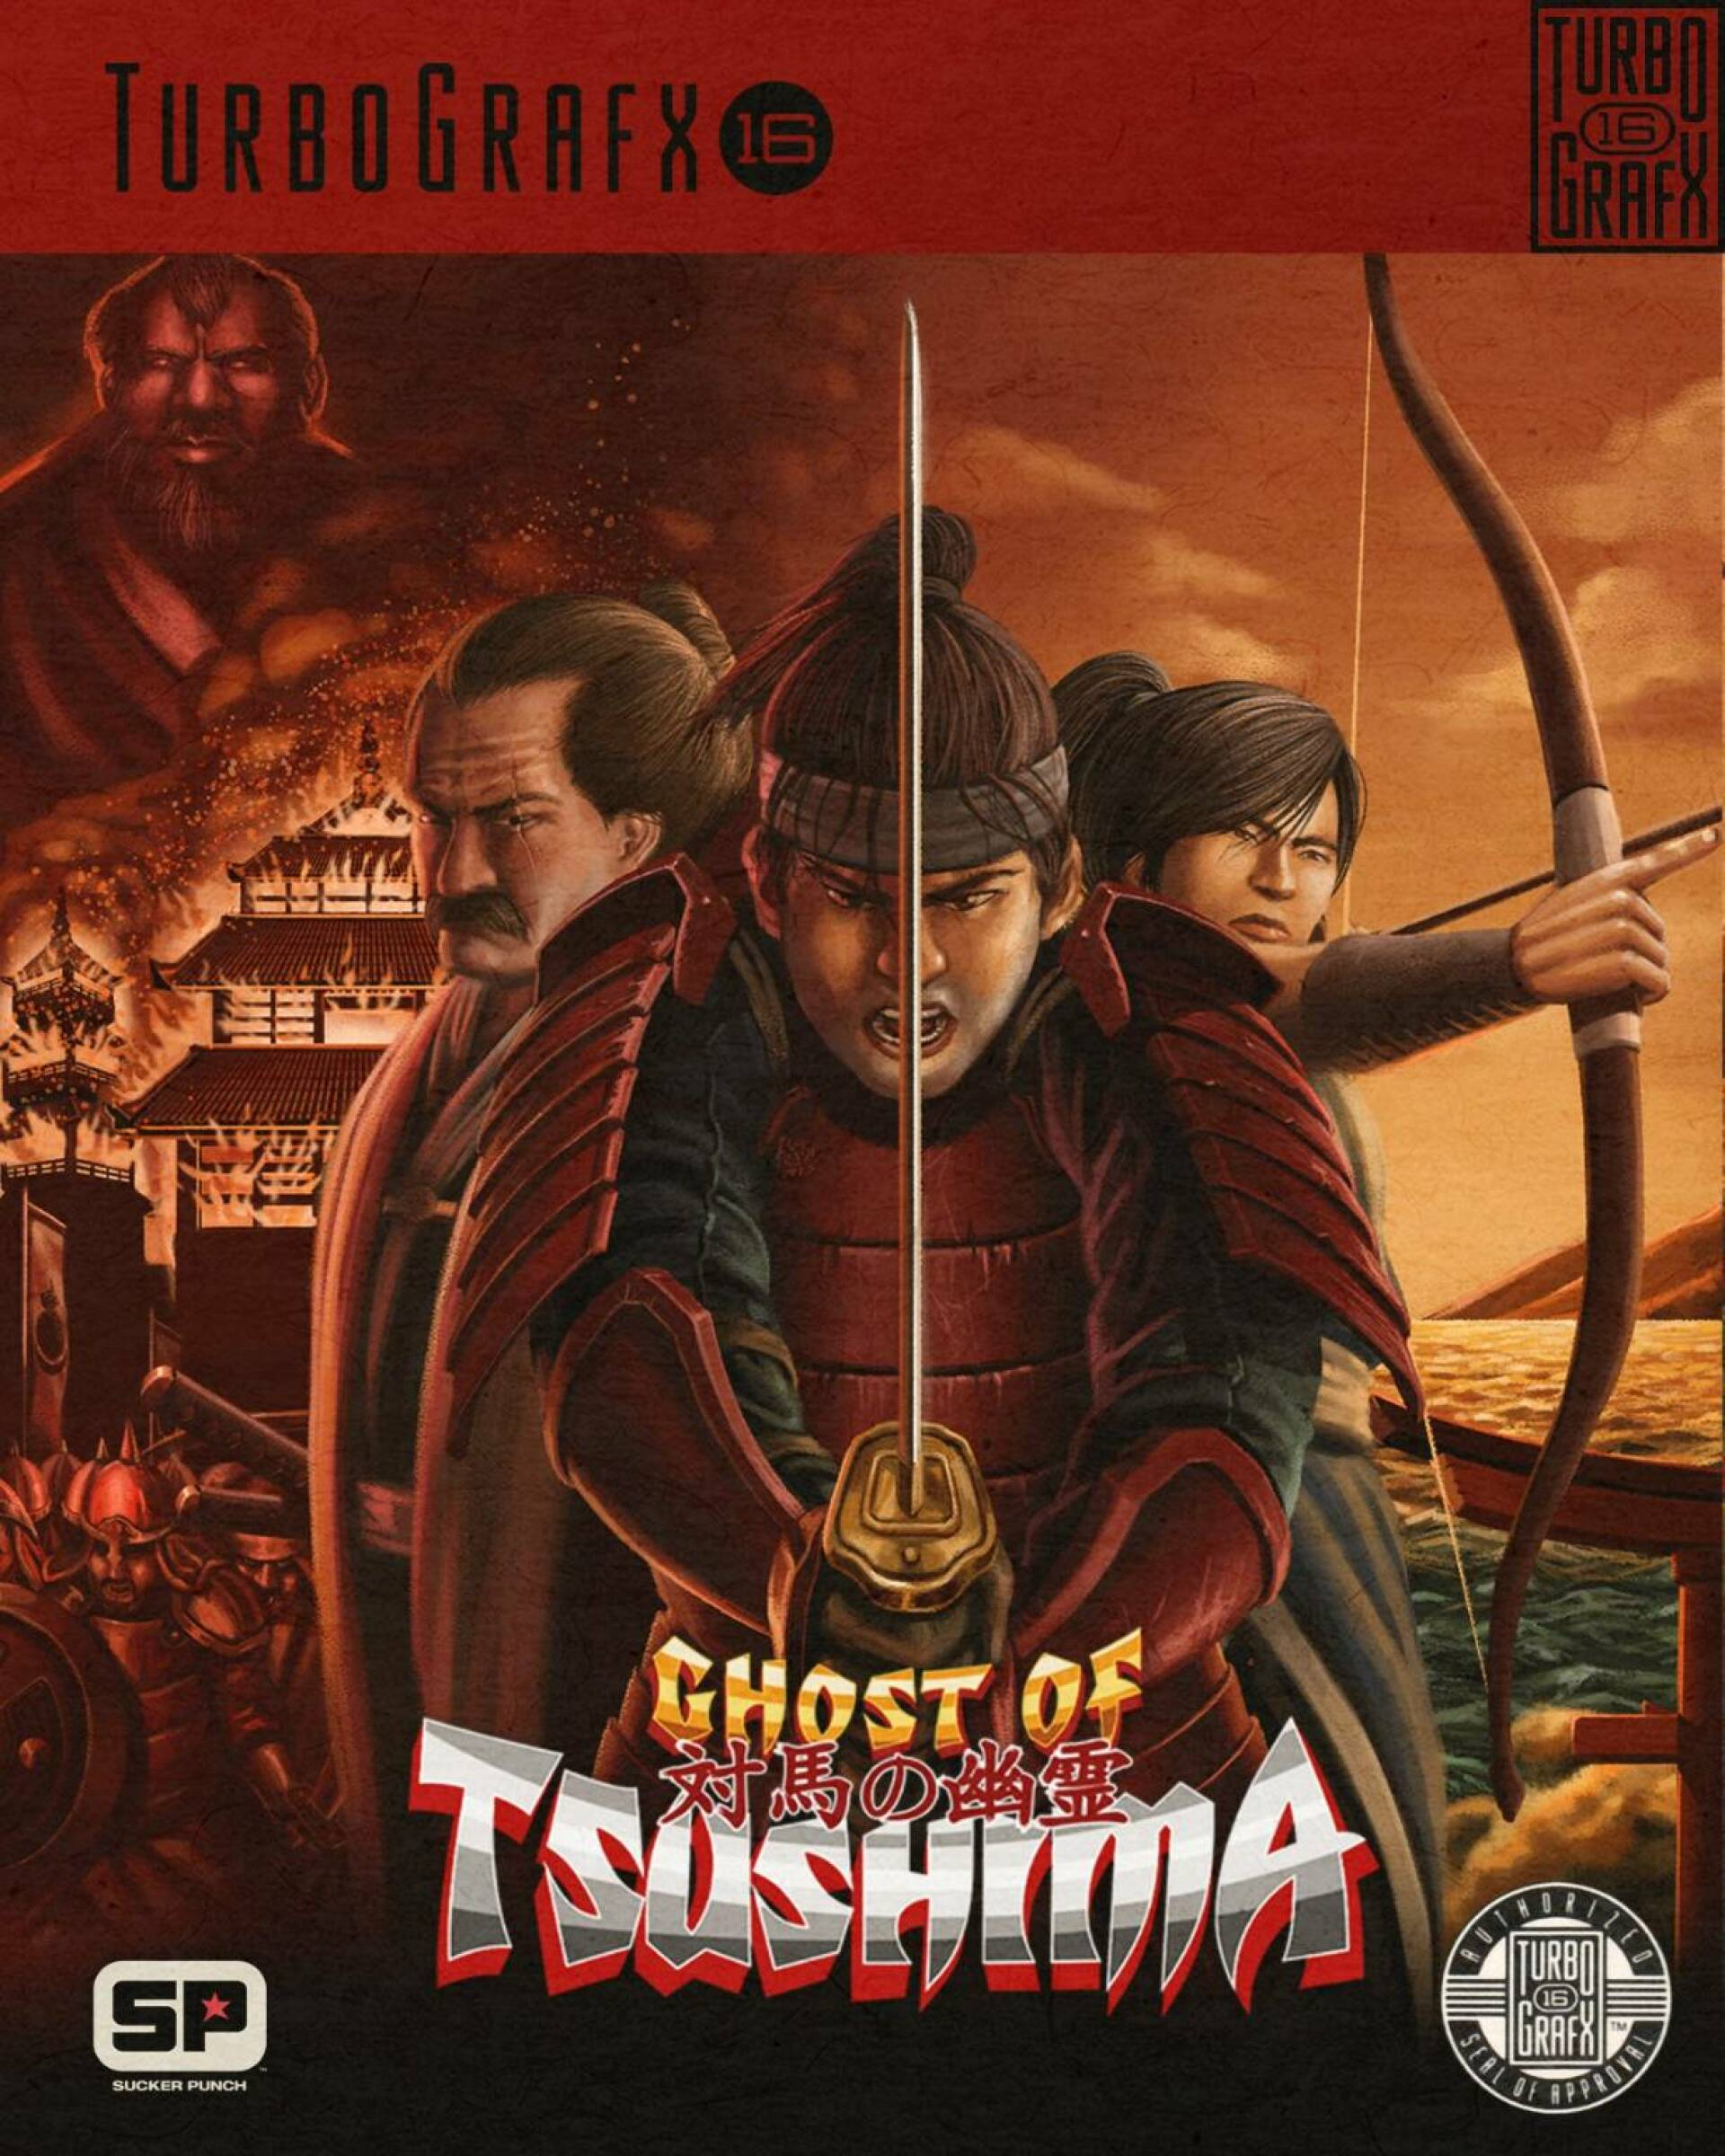 What if Ghost of Tsushima was released thirty years ago?